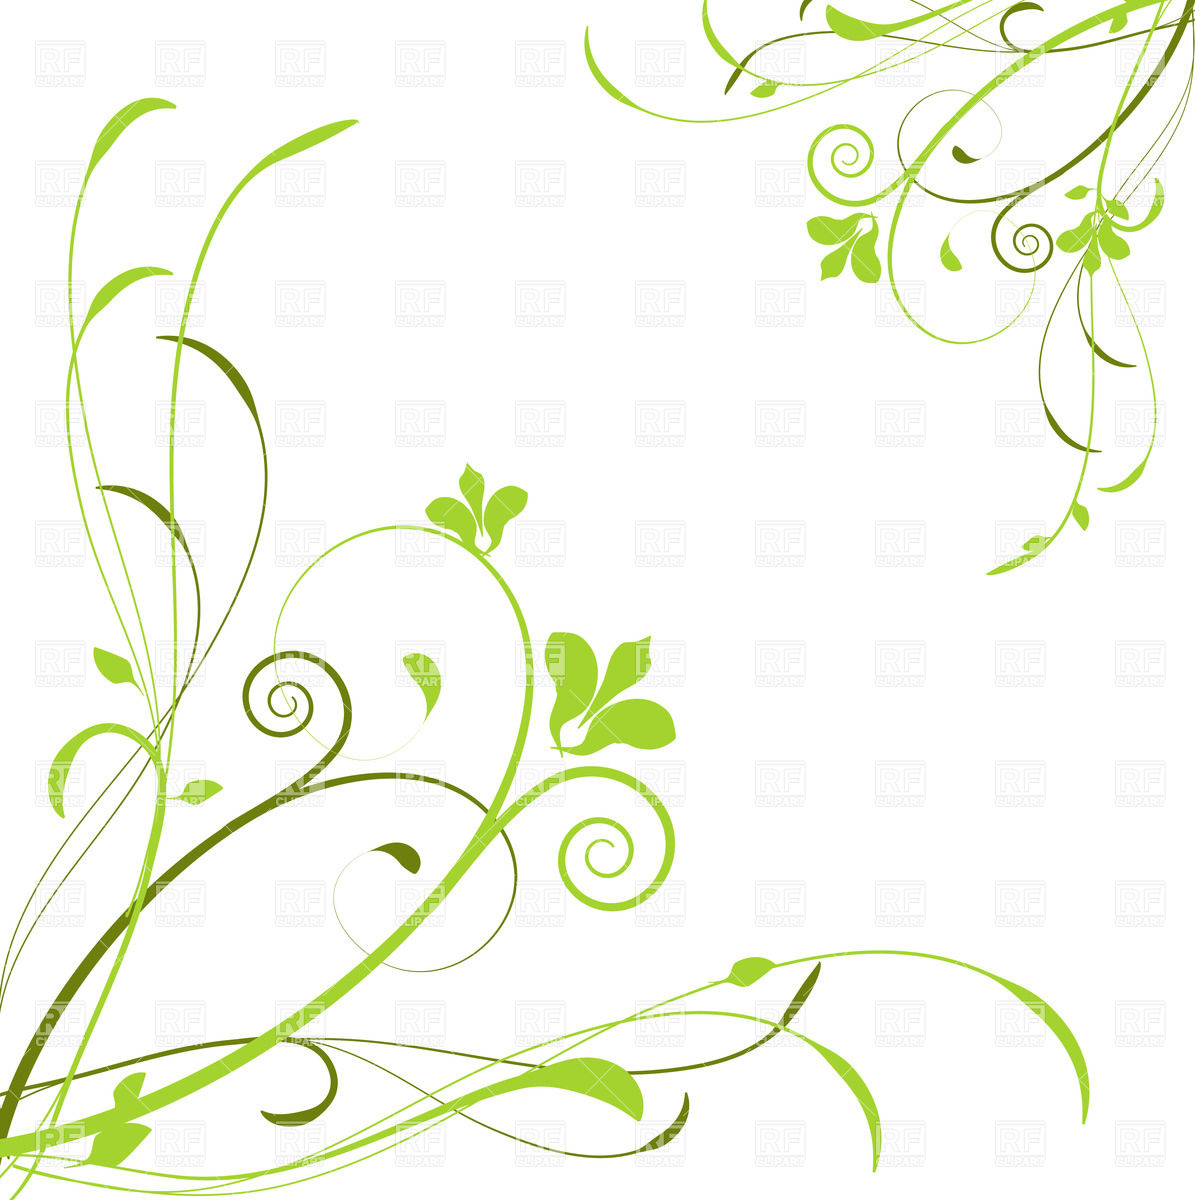 Abstract background with green curly flowers Vector Image #23752.